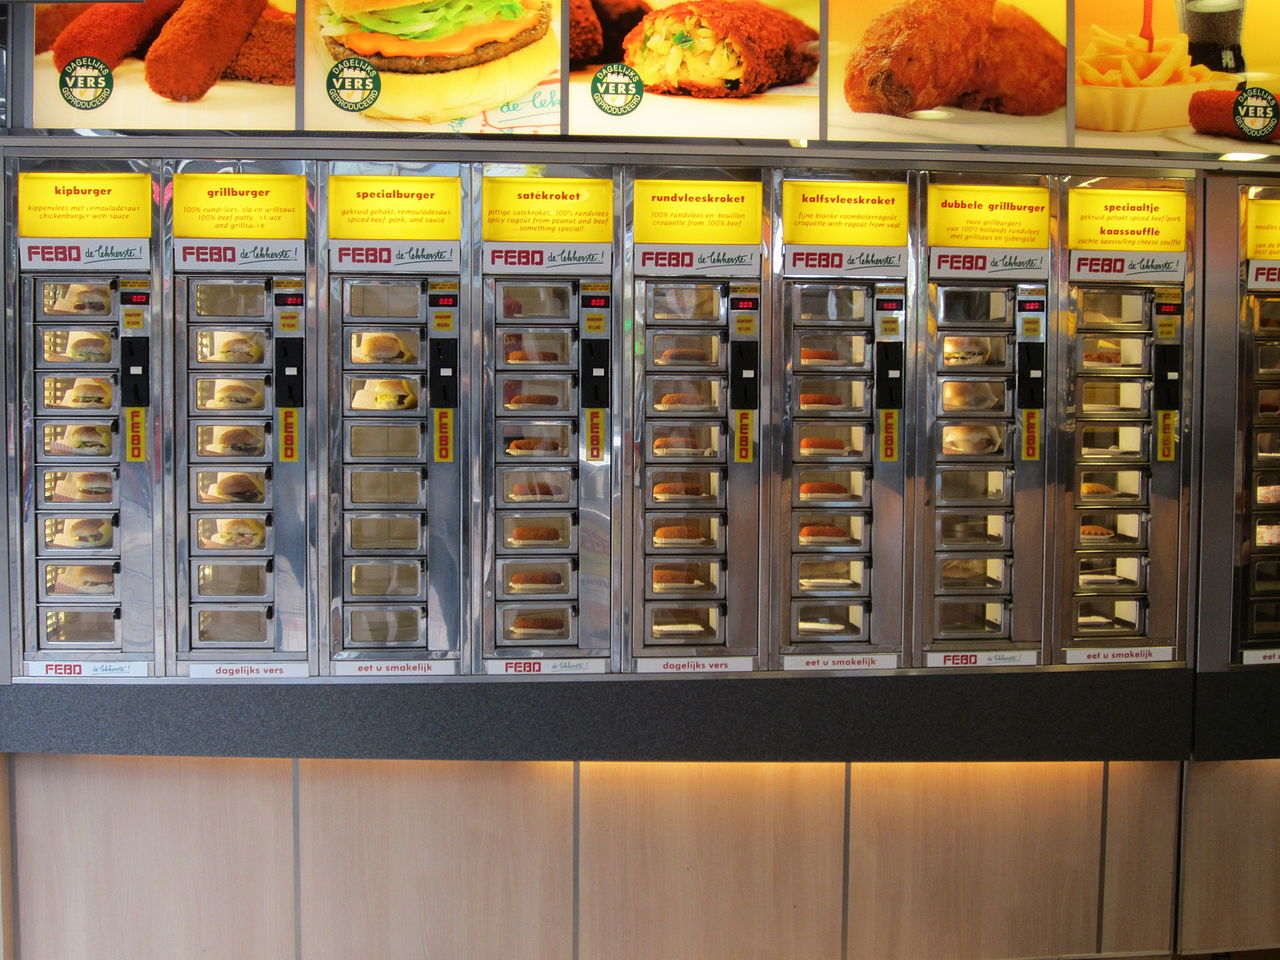 file febo food vending machine jpg wikimedia commons. Black Bedroom Furniture Sets. Home Design Ideas